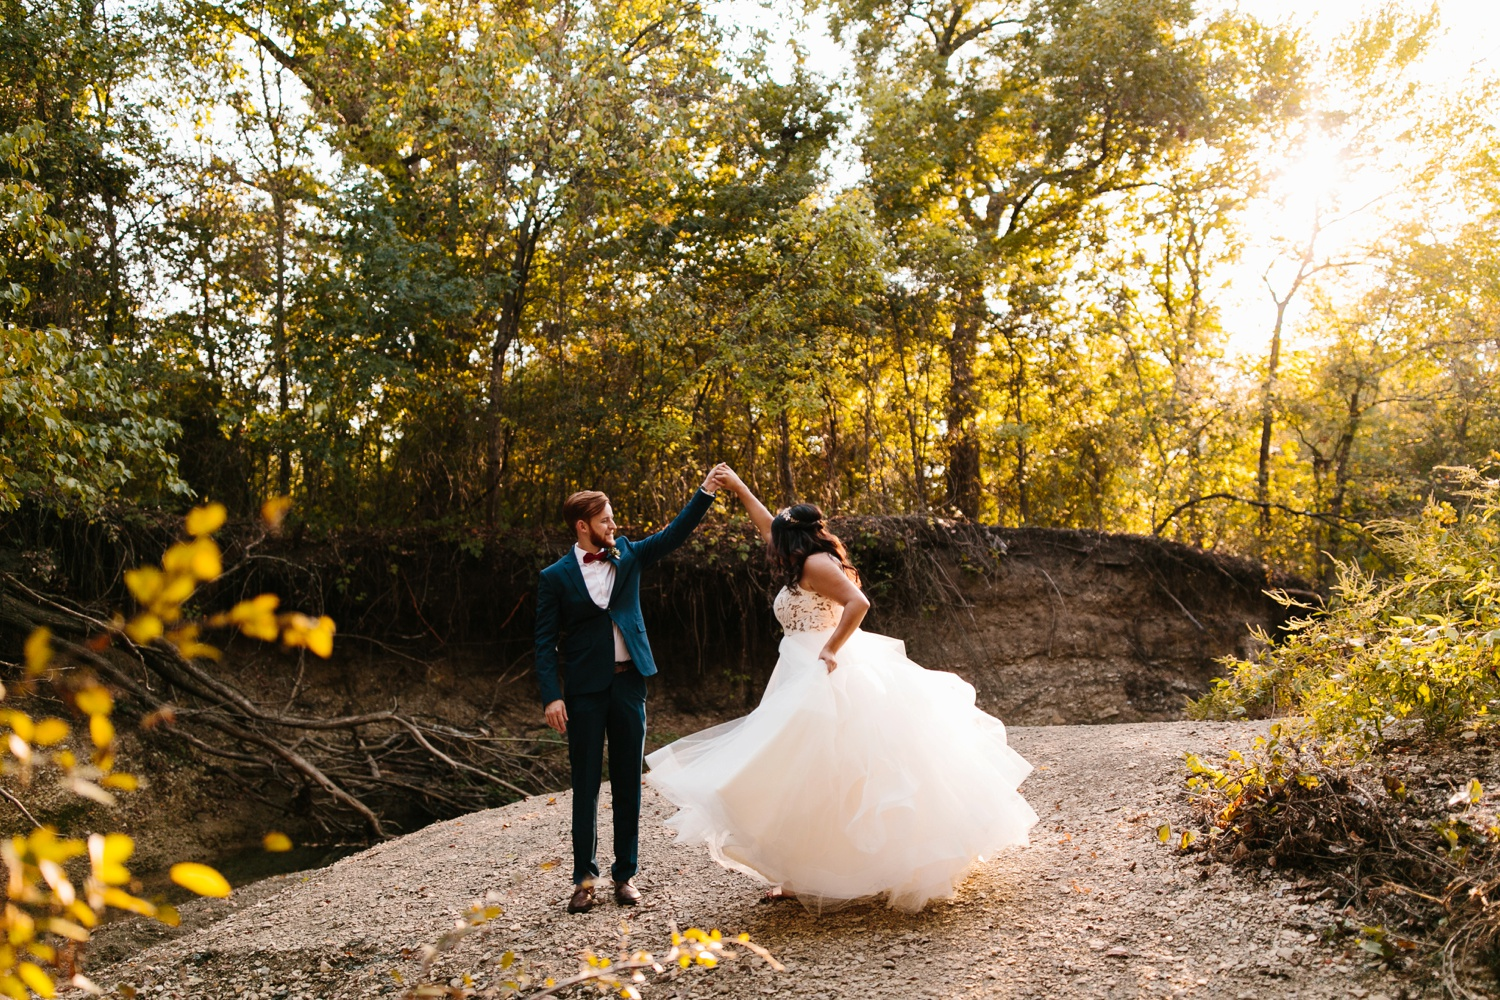 Grant + Lysette | a vibrant, deep burgundy and navy, and mixed metals wedding at Hidden Pines Chapel by North Texas Wedding Photographer Rachel Meagan Photography 196